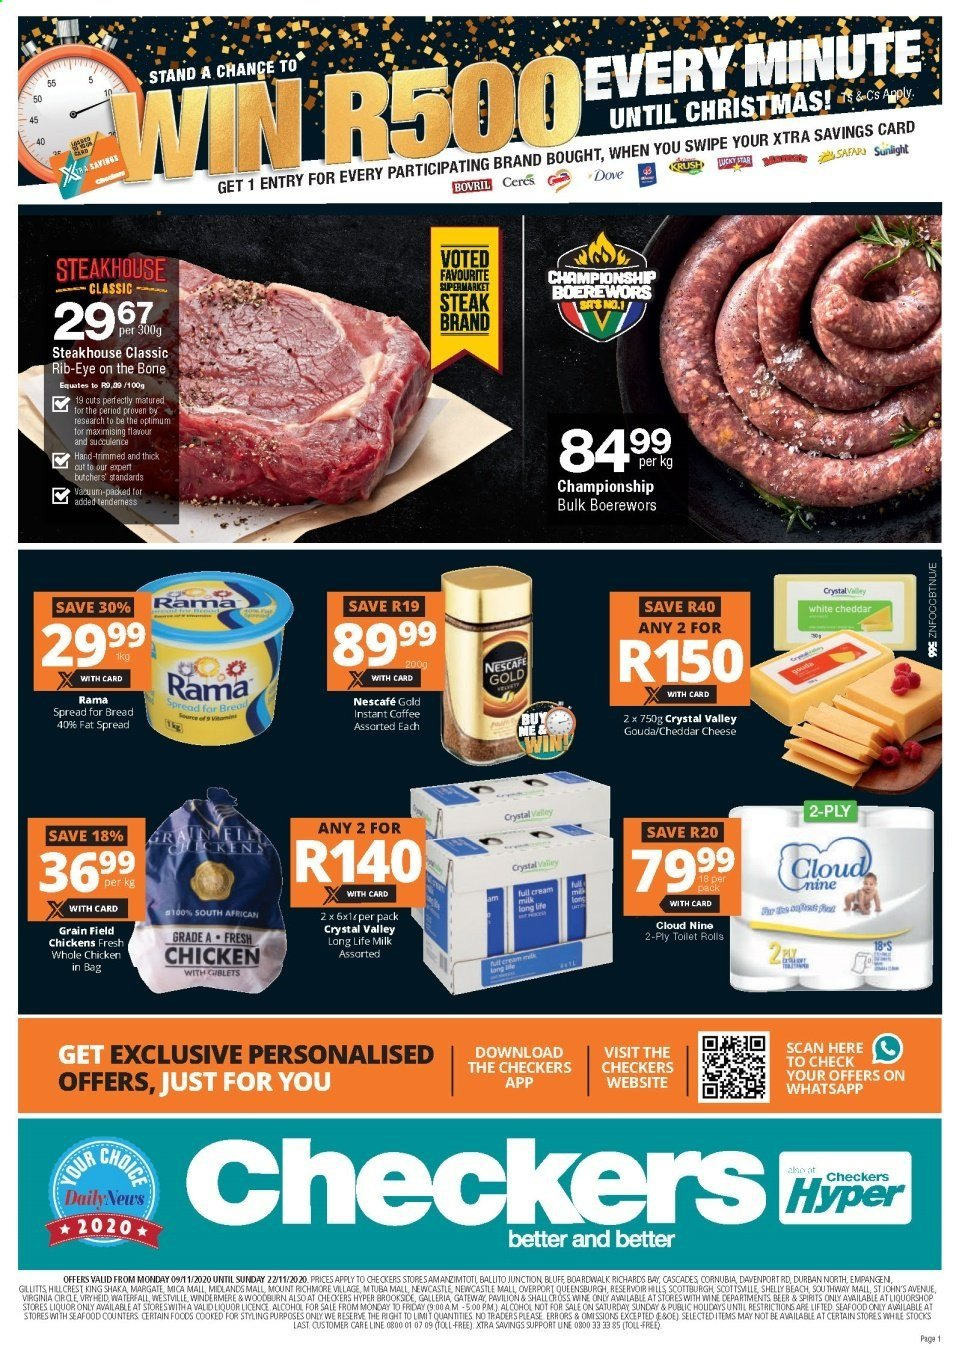 Checkers catalogue  - 11.09.2020 - 11.22.2020 - Sales products - beer, bread, dove, gouda, milk, whole chicken, cheddar, chicken, steak, seafood, fat spread, rama, wine, liquor, cheese, pavilion, rolls, nescafé, toilet roll, long life milk. Page 1.